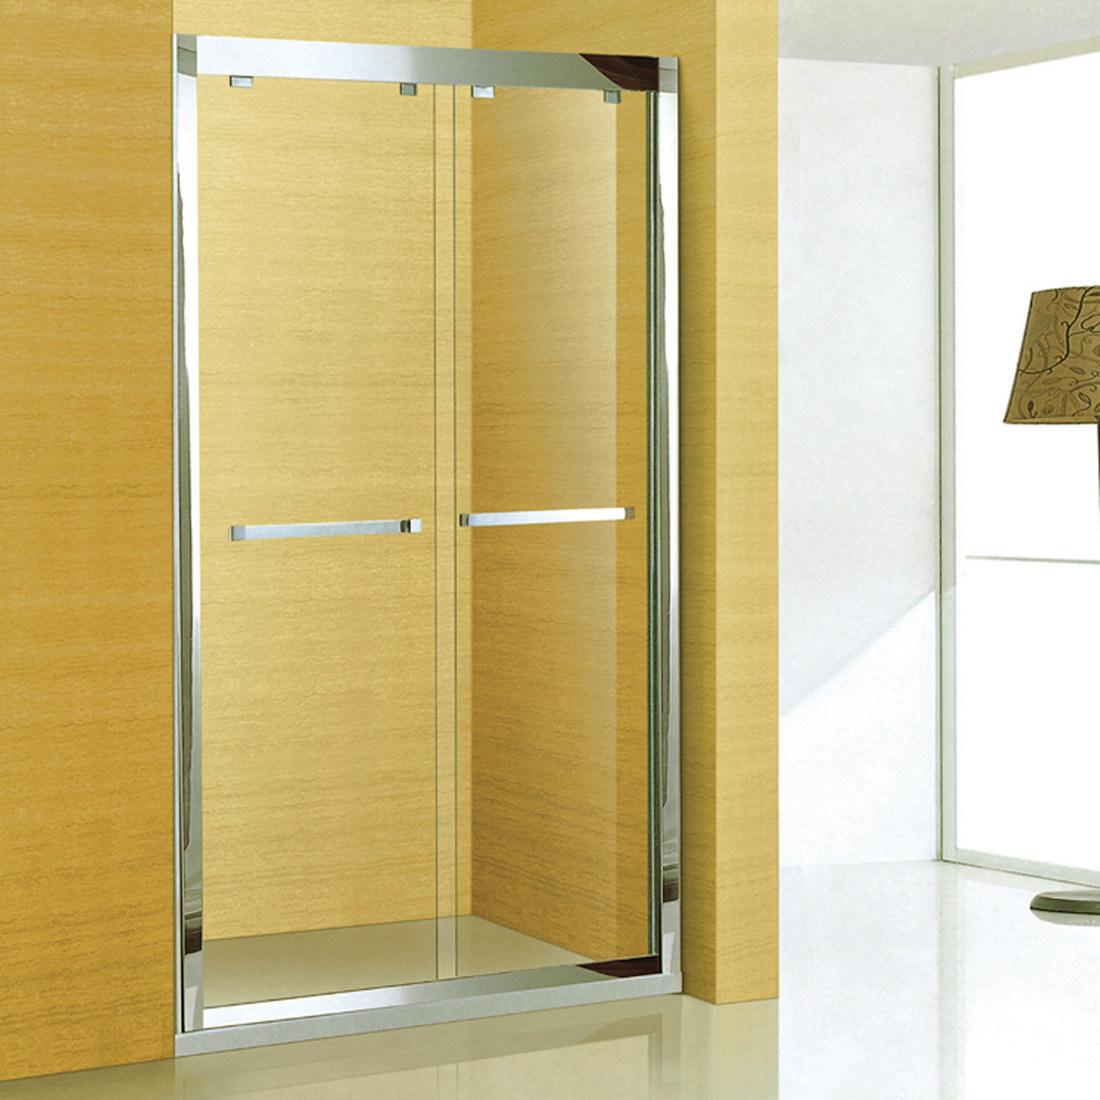 Sanitry Ware 304 Stainless Steel Frame Bathroom Shower Screen (A-8955)